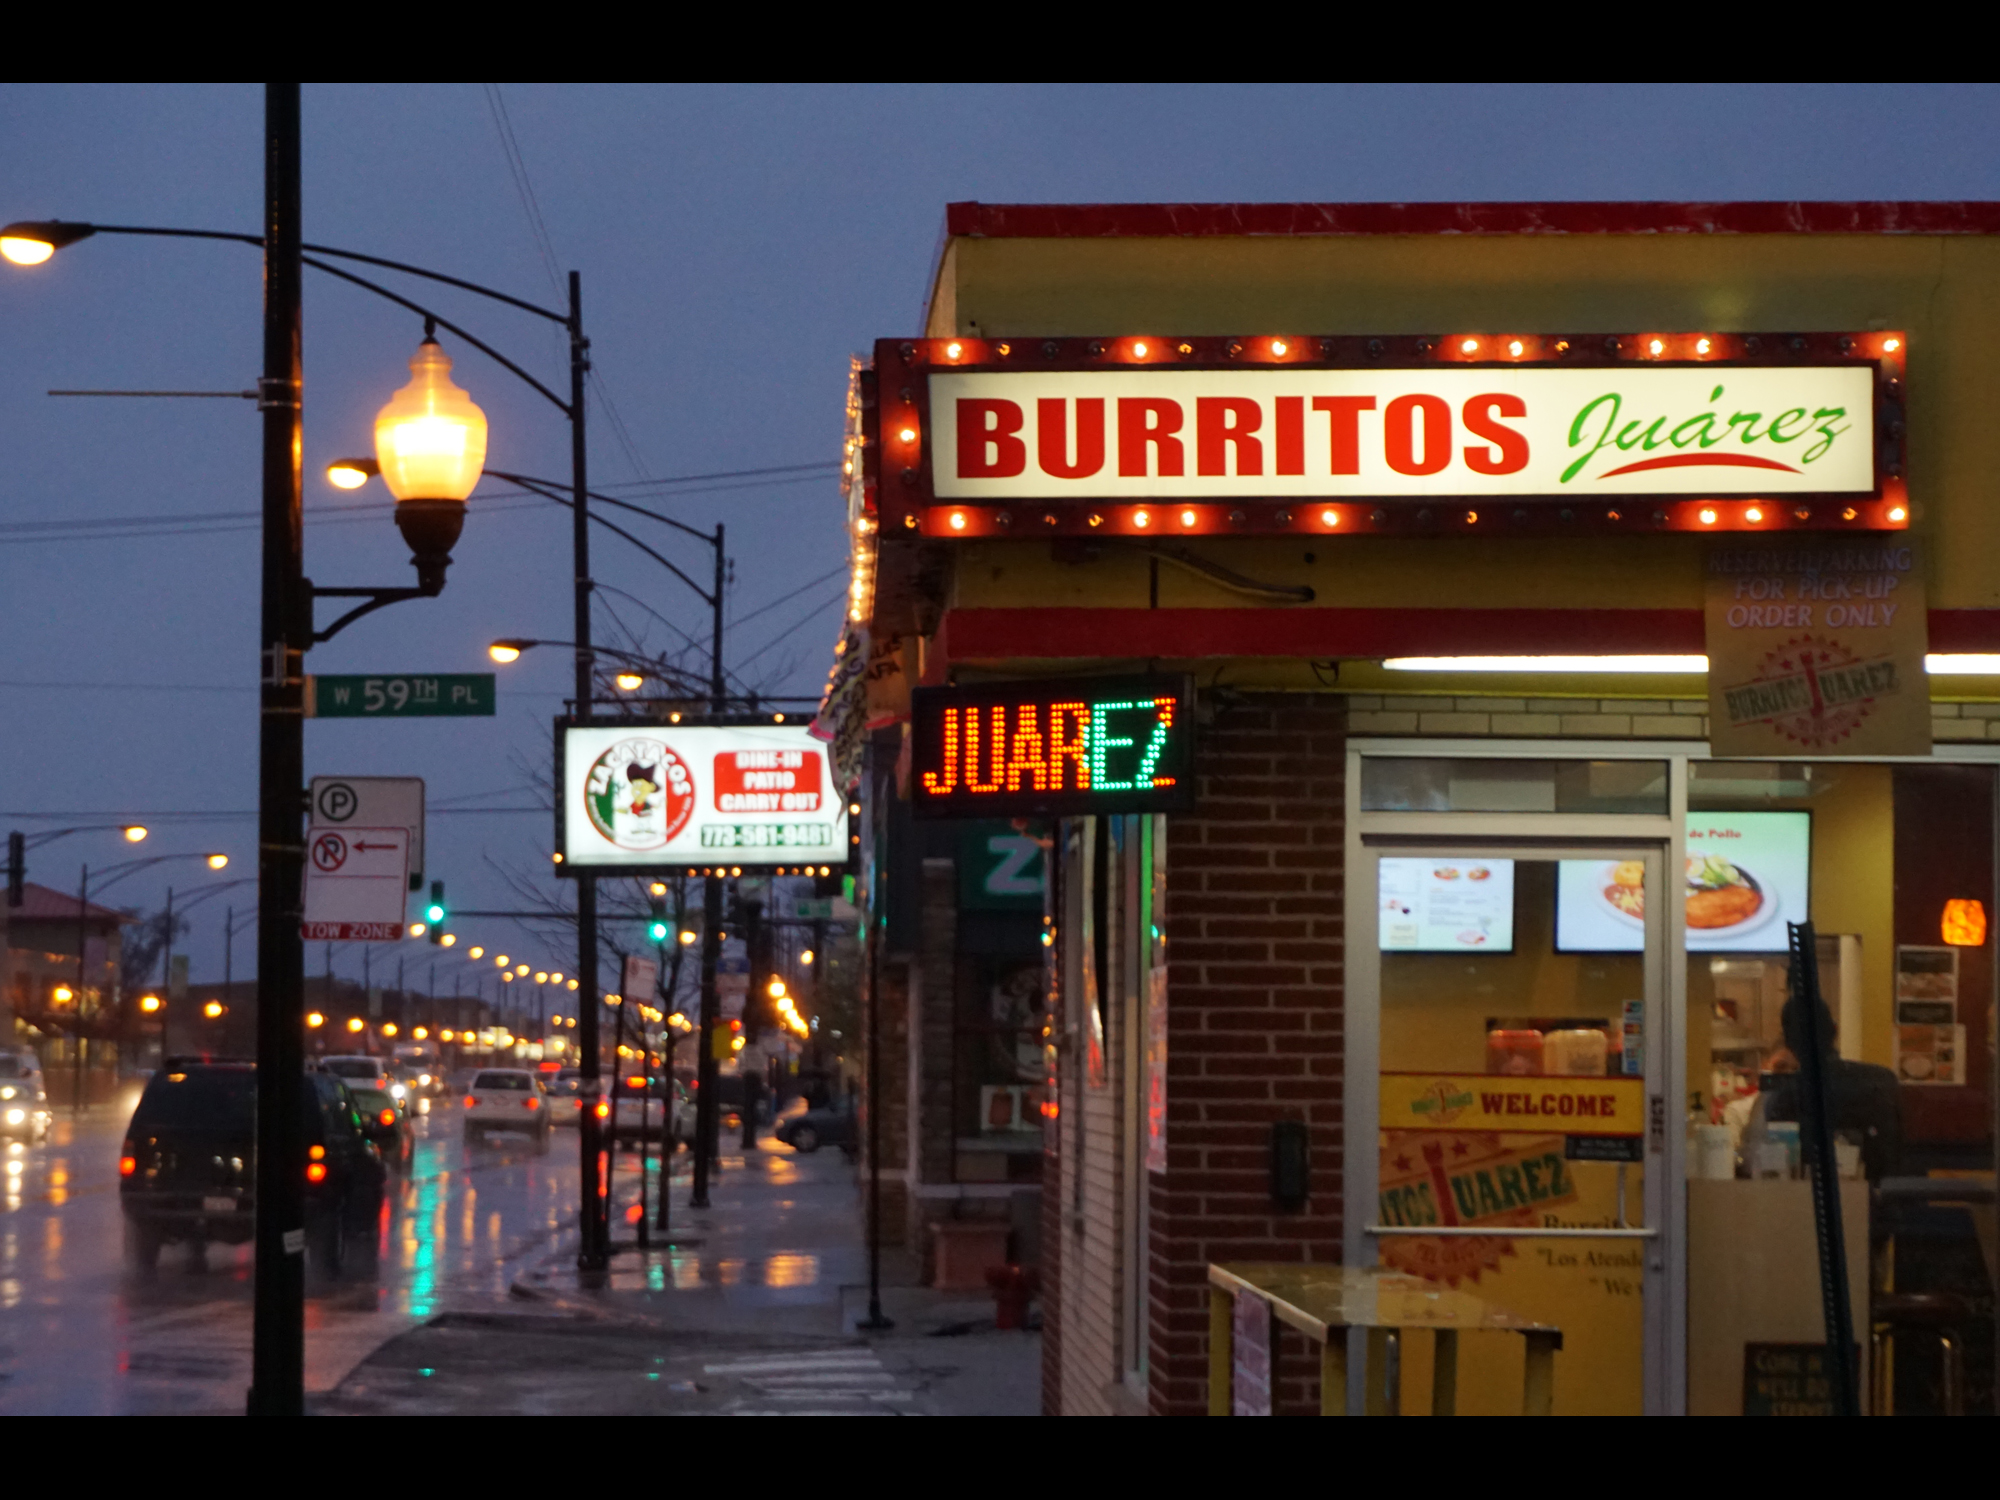 THE FOODITOR GUIDE TO THE NORTEÑO BURRITOS AT BURRITOS JUAREZ